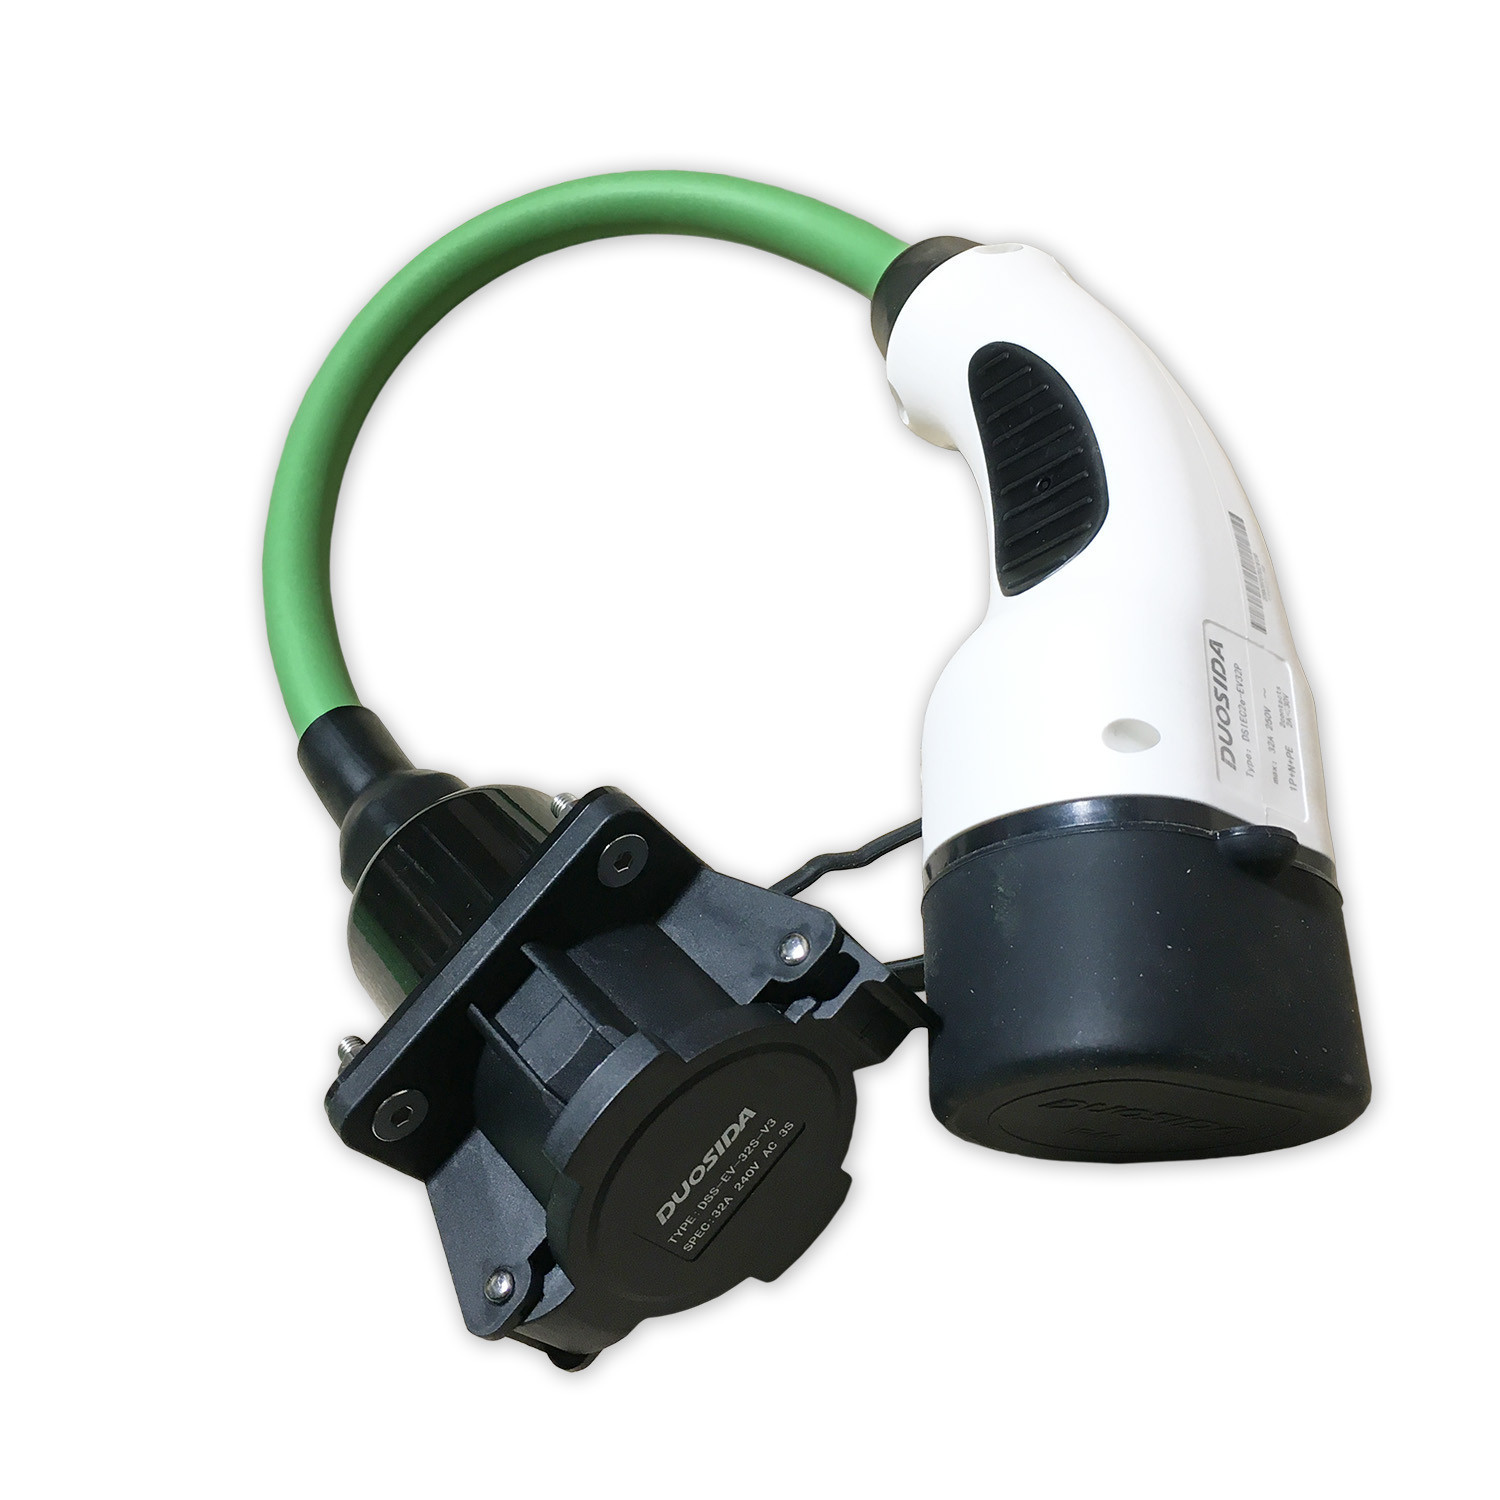 Picture of 0.3 Metre Charging Cable Converter  - Type 1 to Type 2  - 7.4kW - 32A